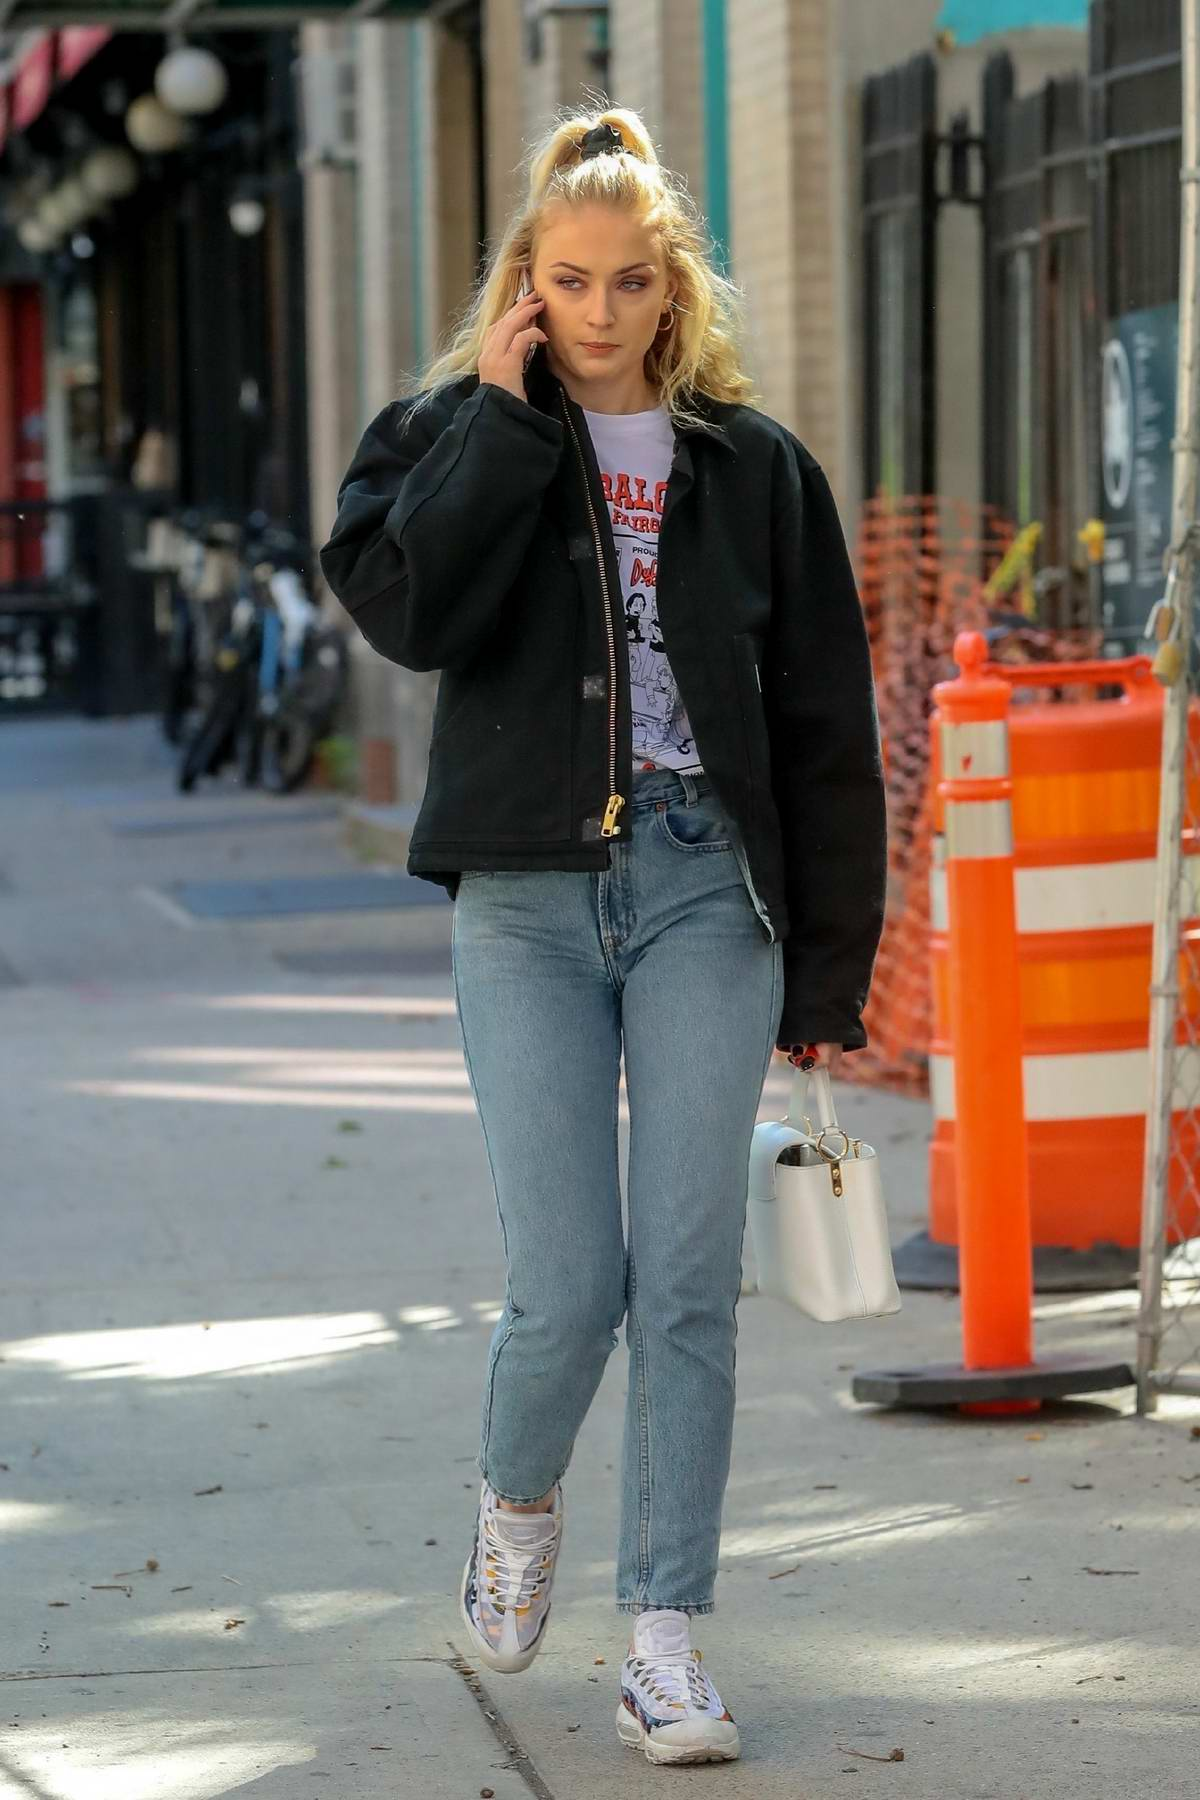 Sophie Turner chats on her phone while out in New York City